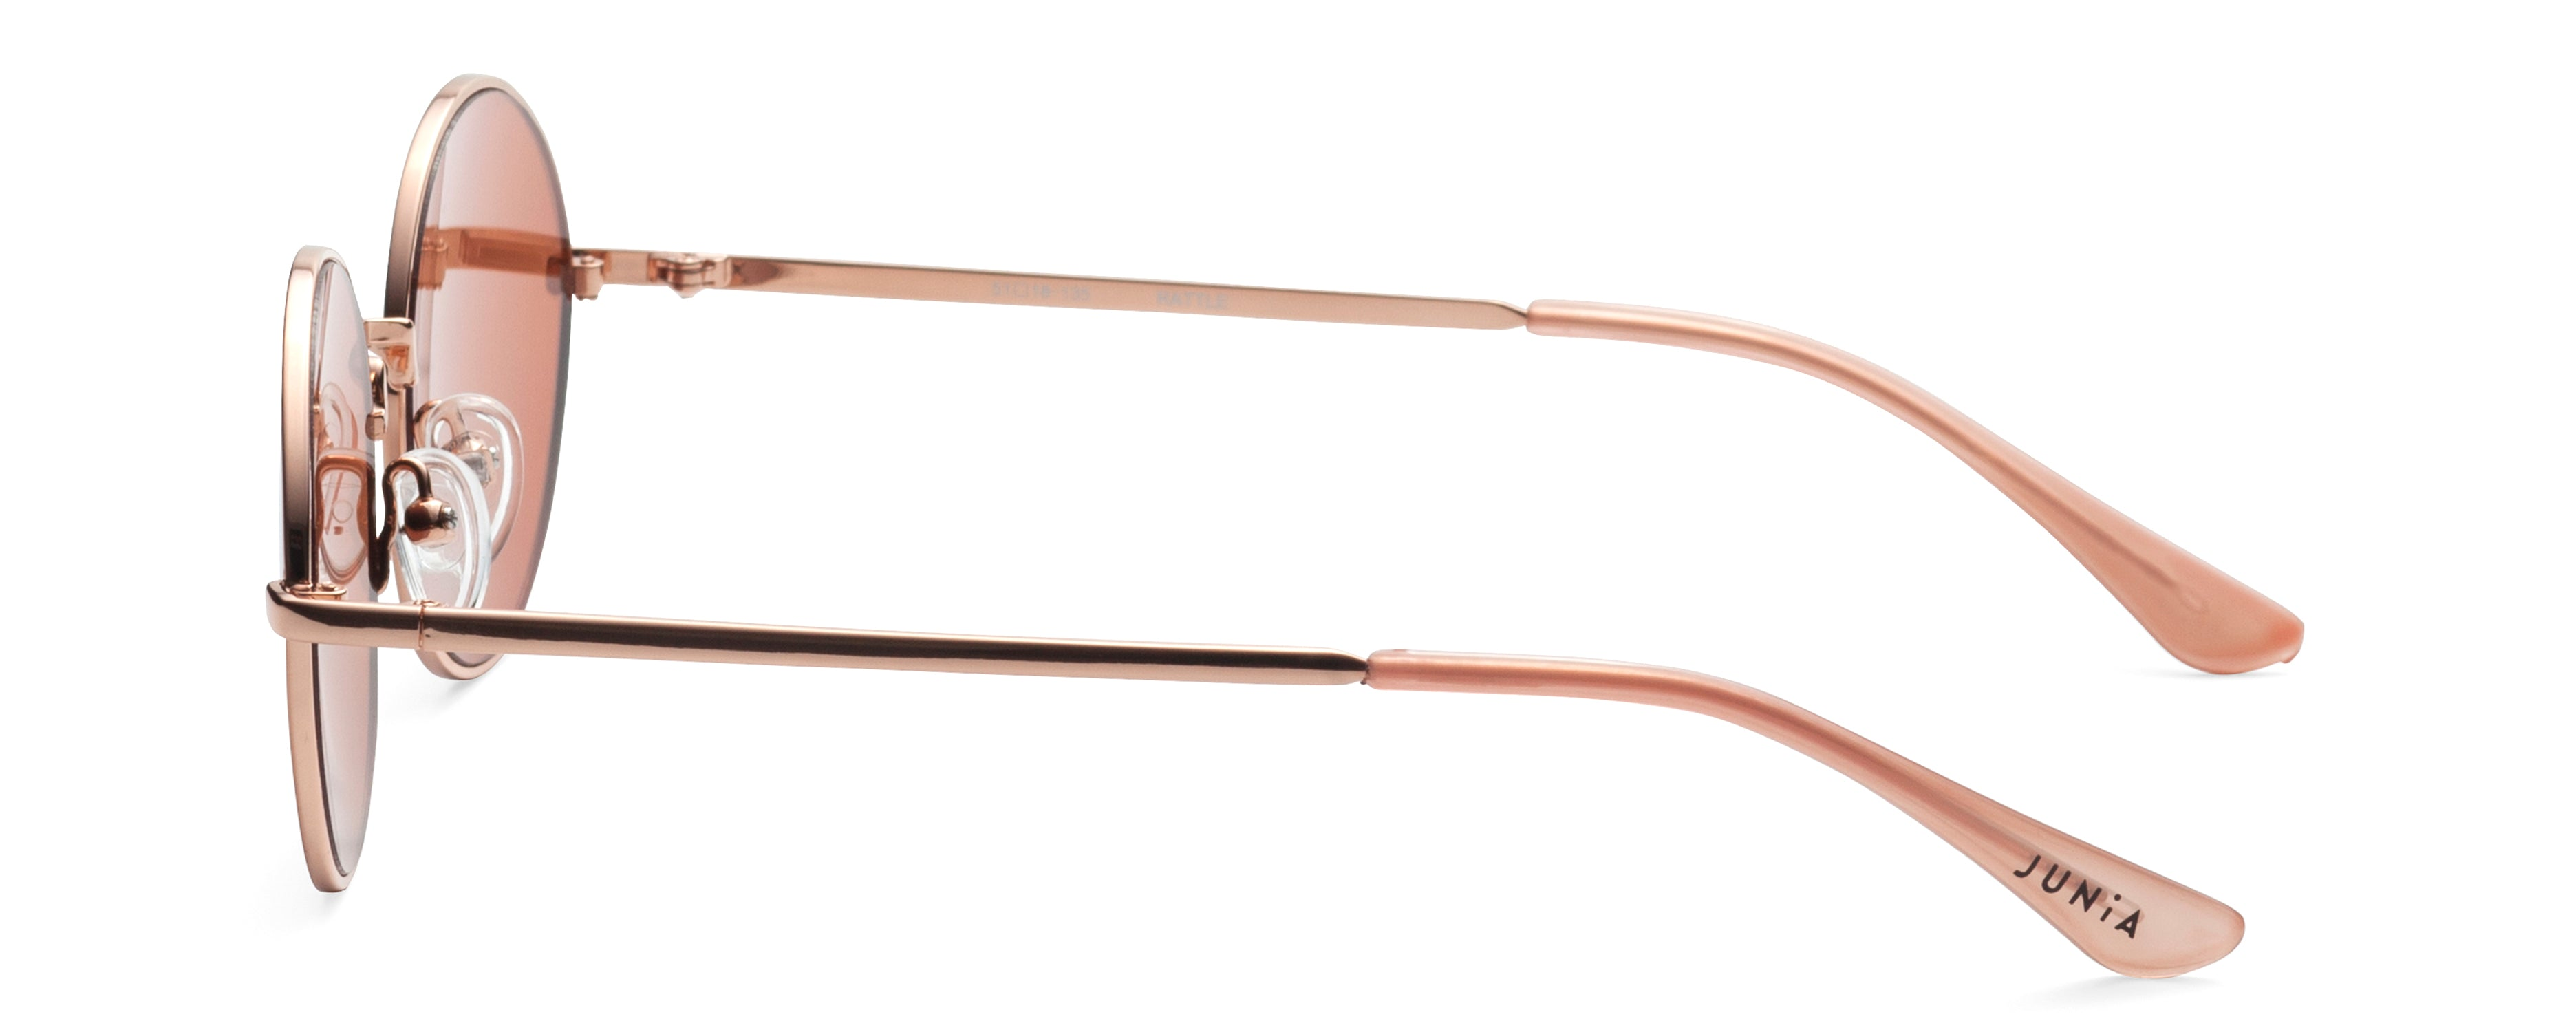 RATTLE Rose Gold JUNiA Kids Sunglasses